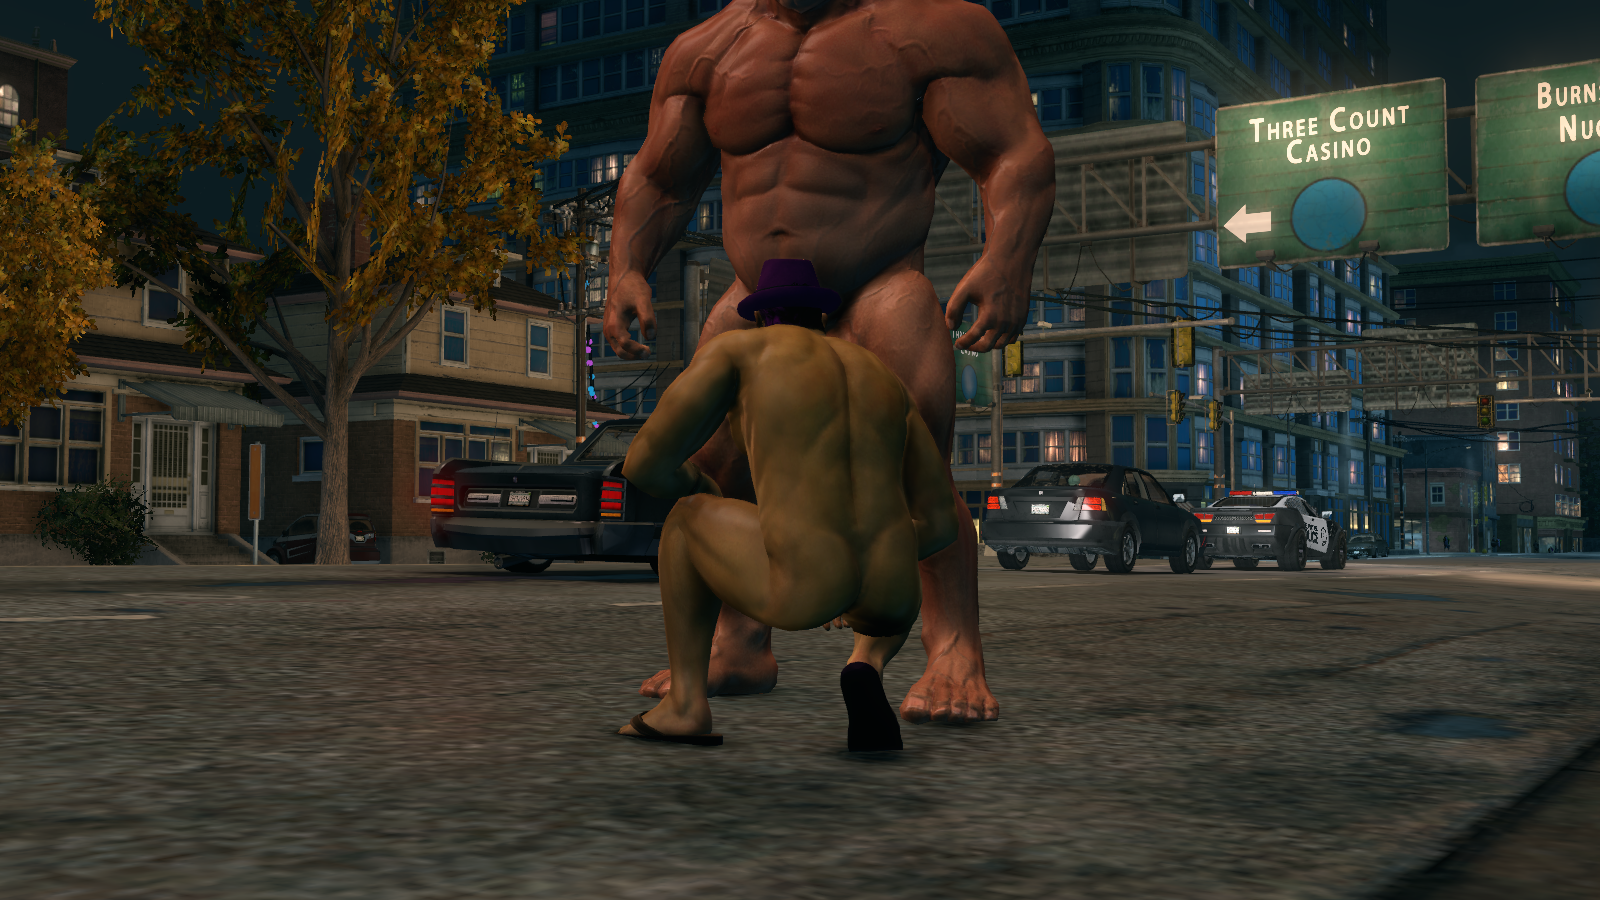 Saints row 2 nude unblurred glitch fucked pictures